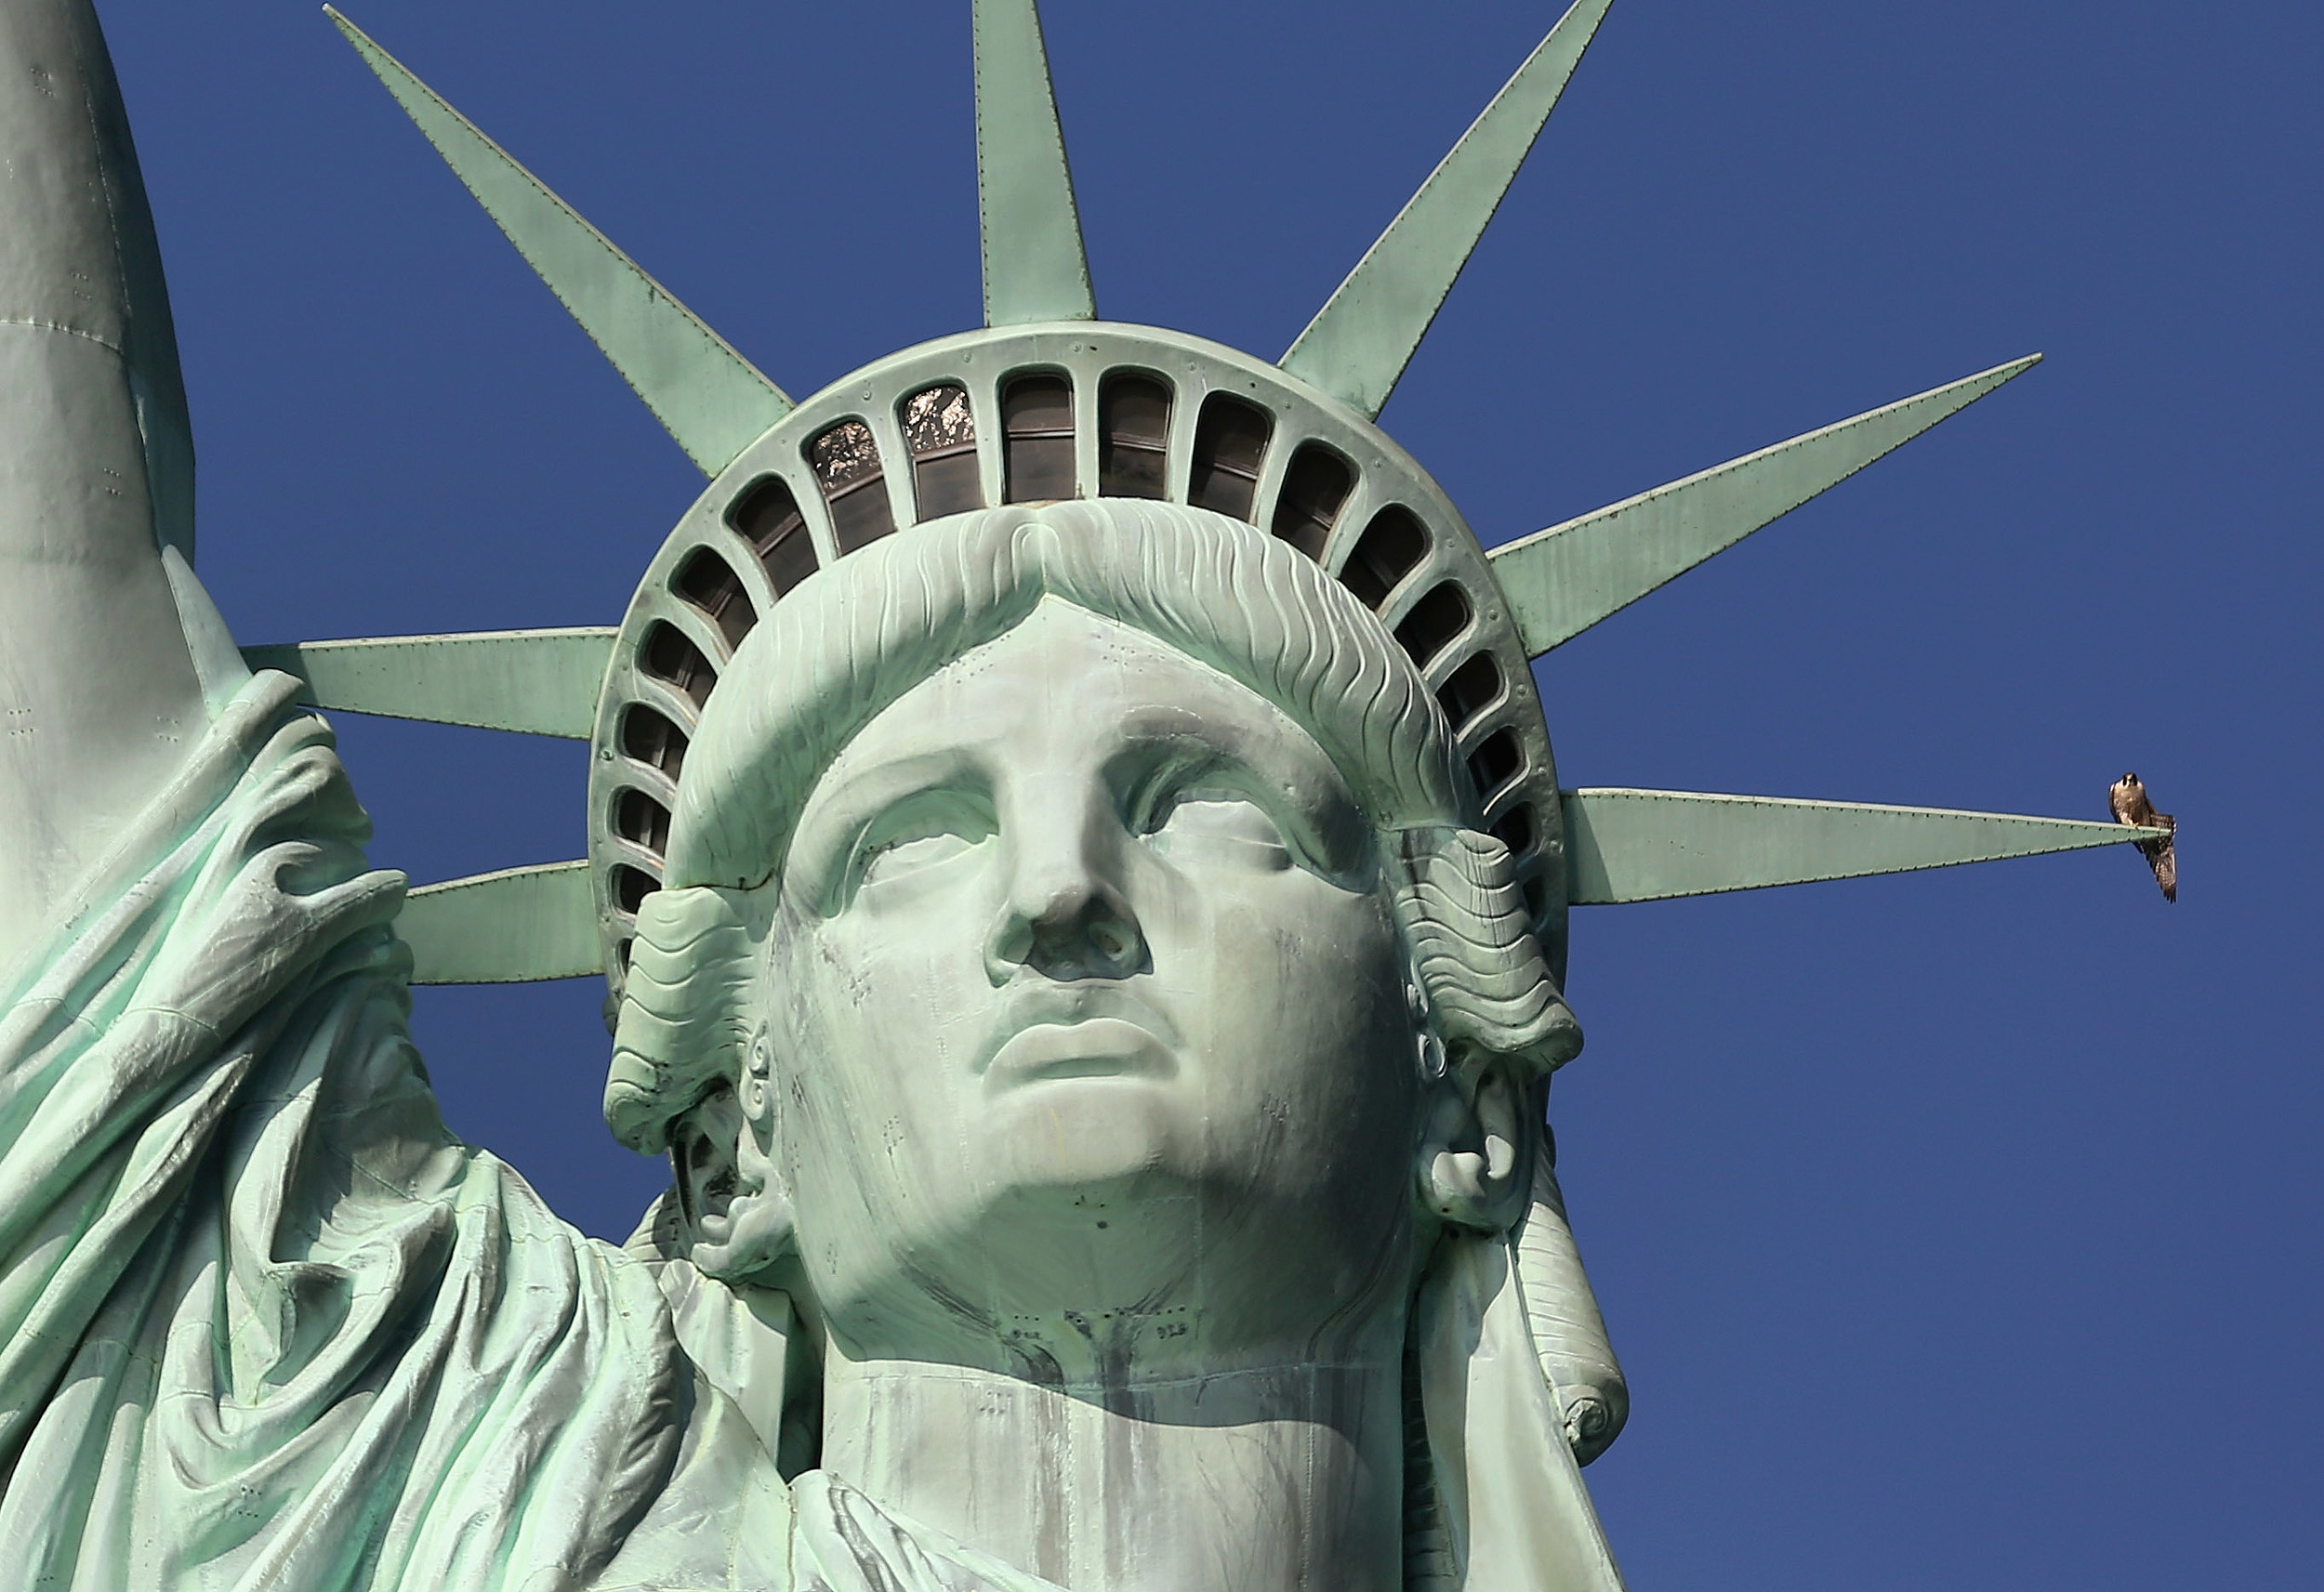 5ebf6a0e8d2a4 Is the Statue of Liberty in New York or New Jersey? Cool facts, weird  theories